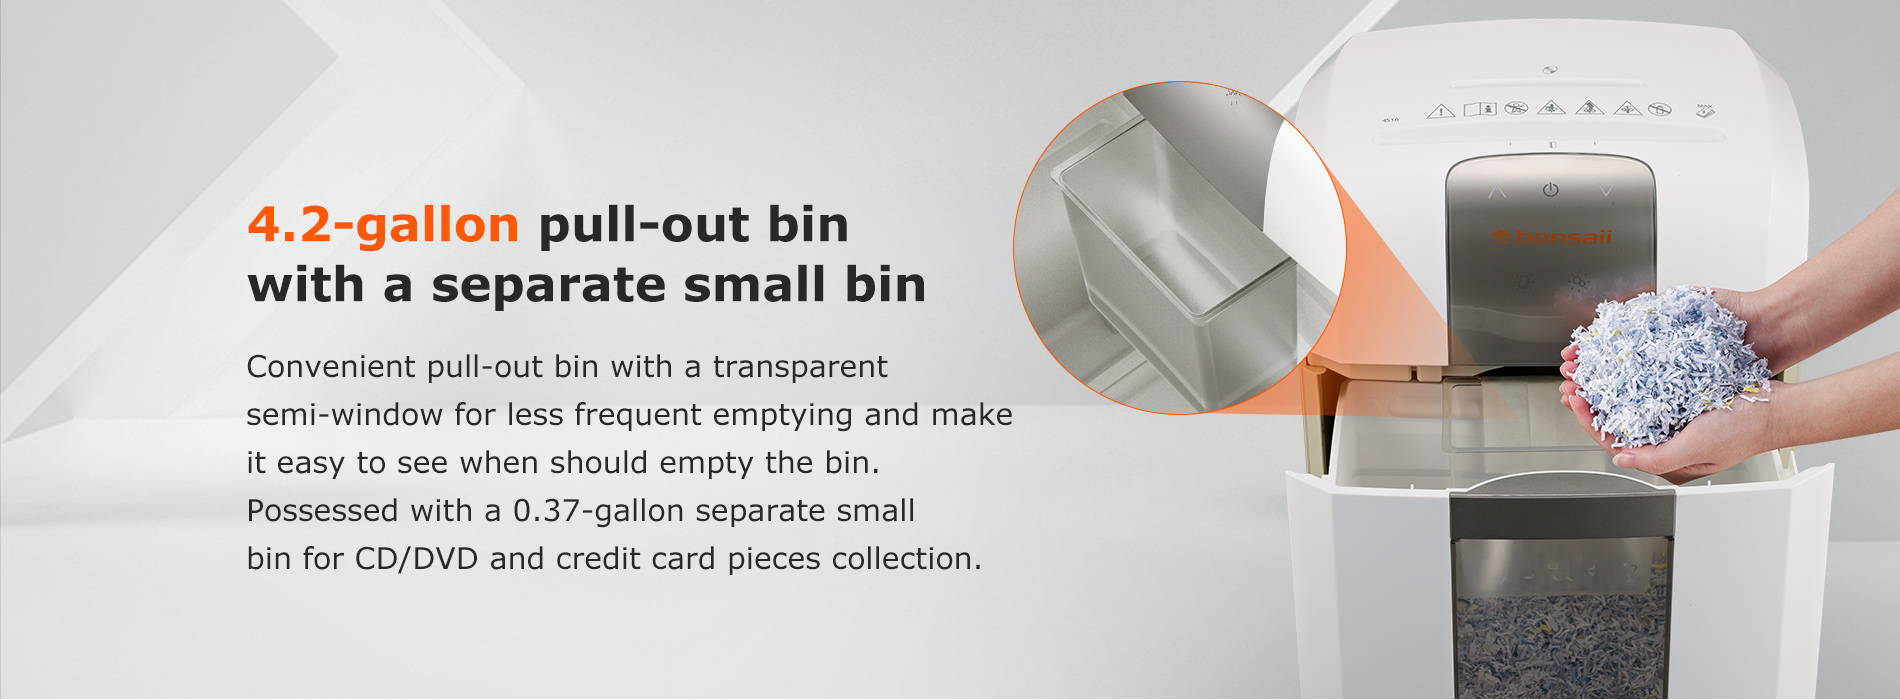 4.2-gallon pull-out bin with a separate small bin  Convenient pull-out bin with a transparent semi-window for less frequent emptying and make it easy to see when should empty the bin. Possessed with a 0.37-gallon separate small bin for CD/DVD and credit card pieces collection.